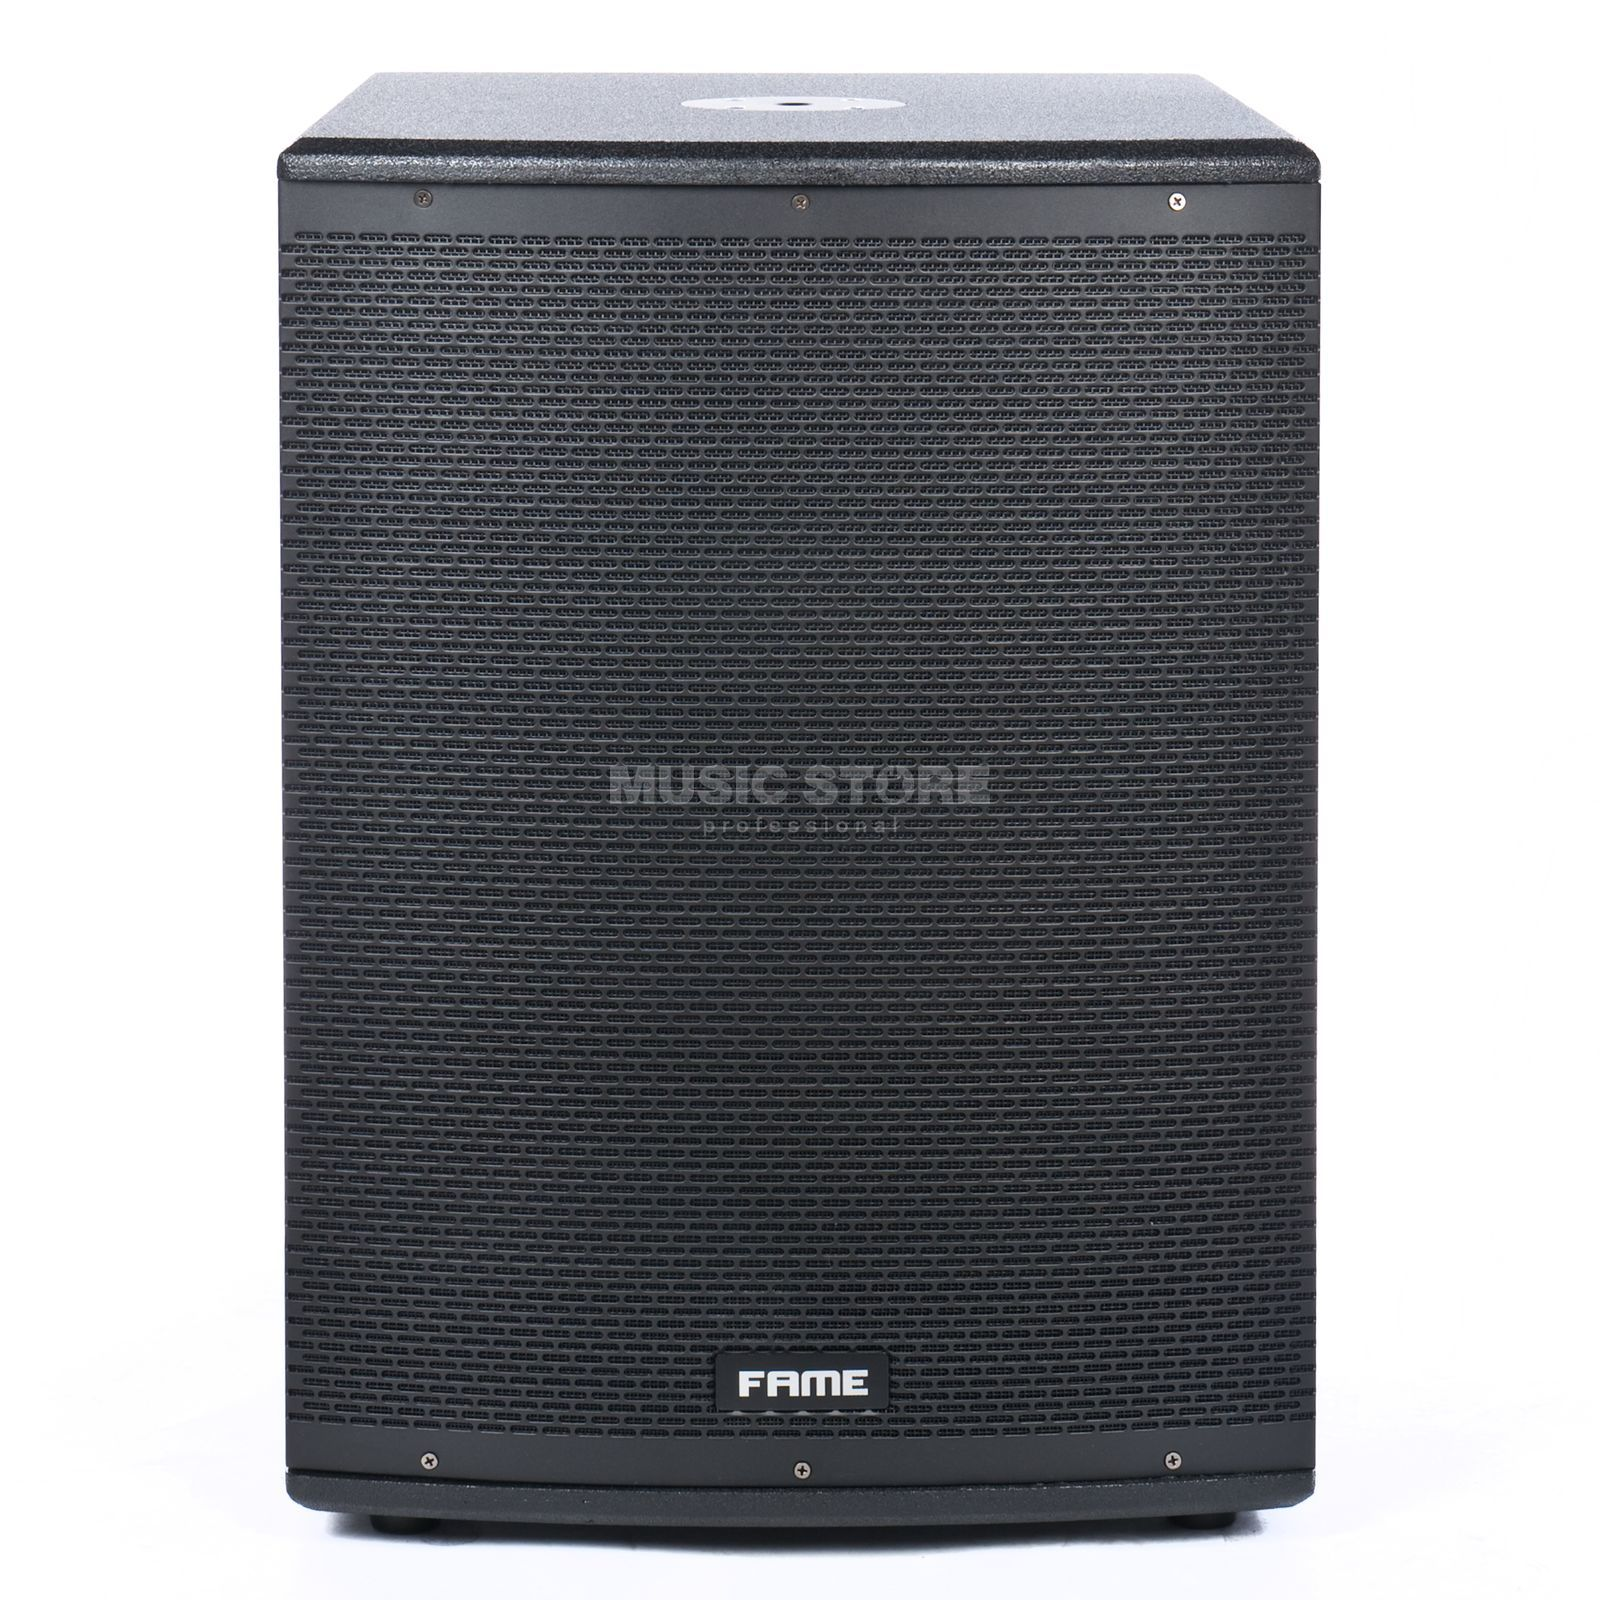 "Fame audio Challenger SUB 15P passiver  15"" Subwoofer, 600W Product Image"